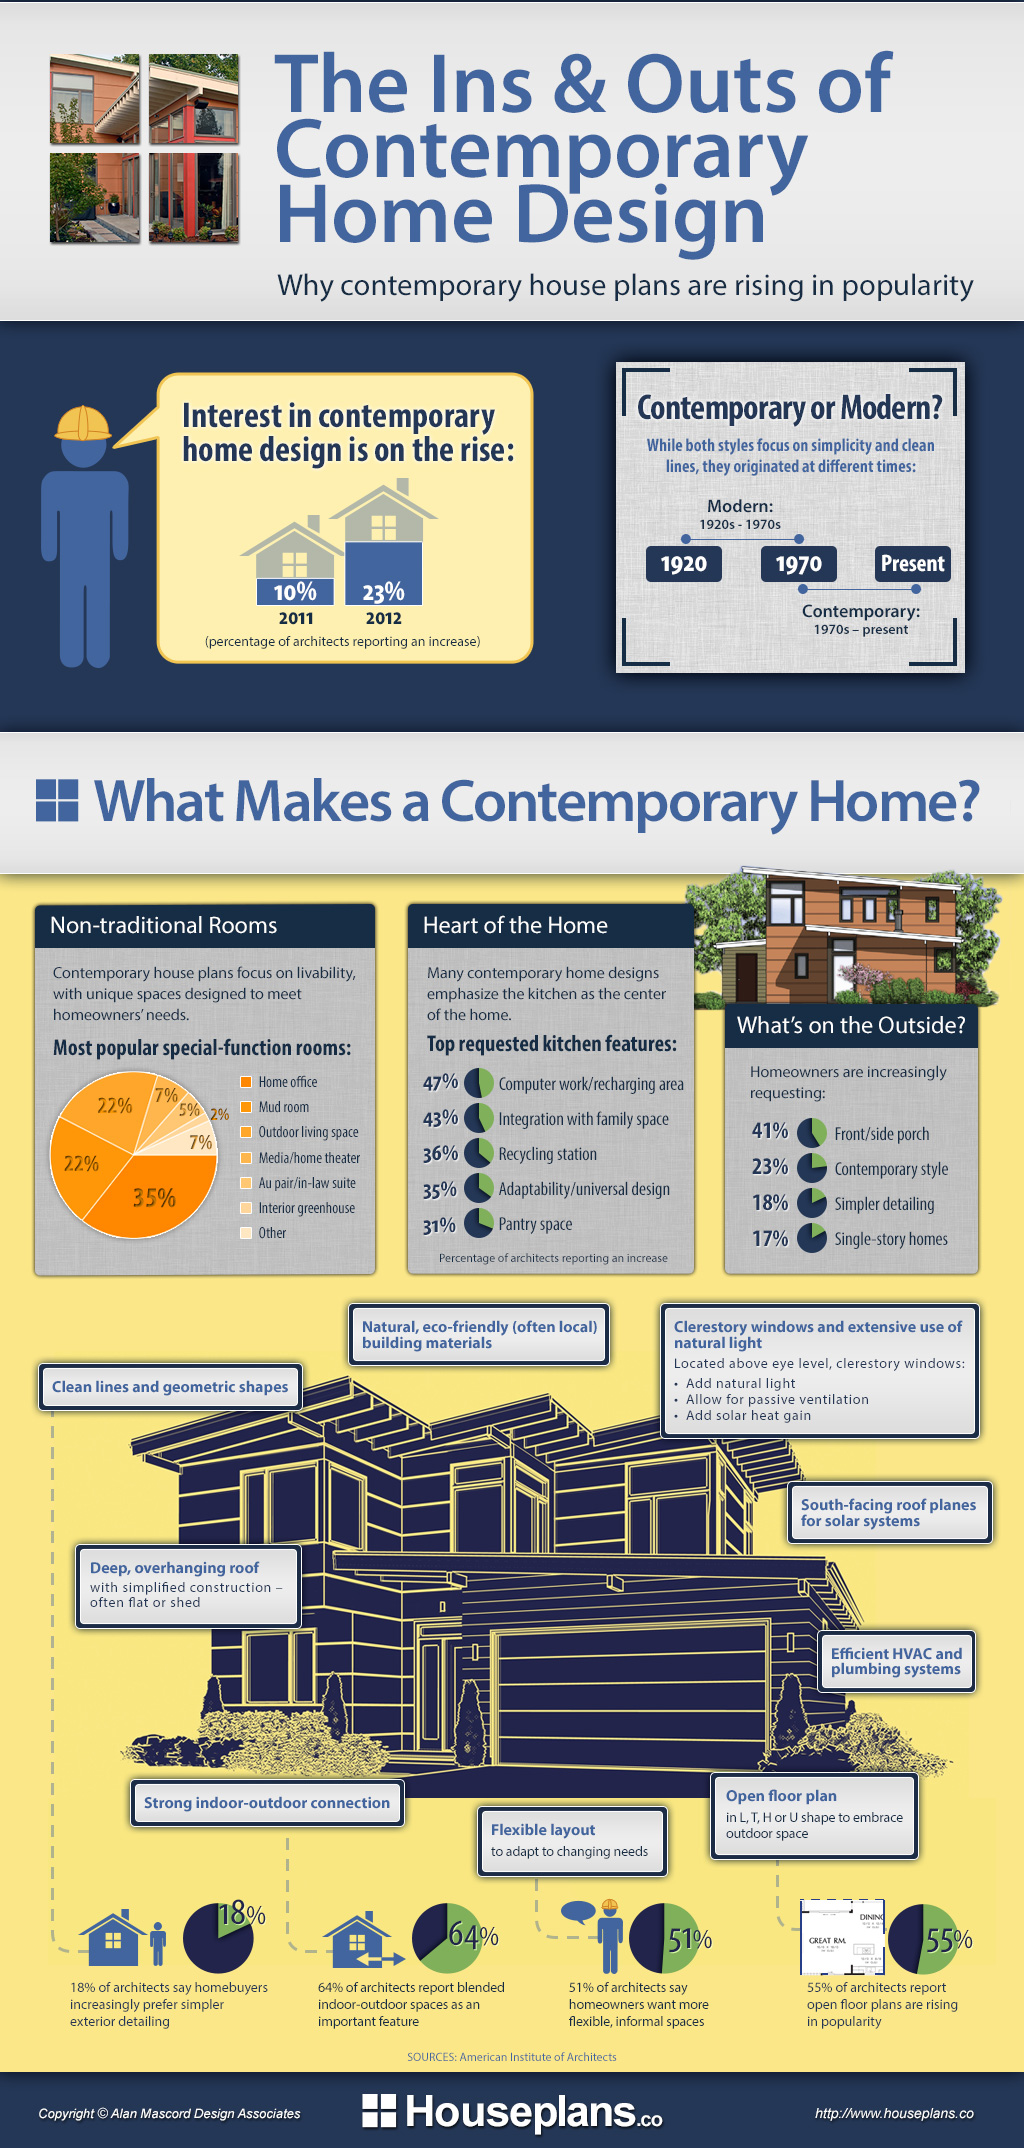 The Ins & Outs of Contemporary Home Design